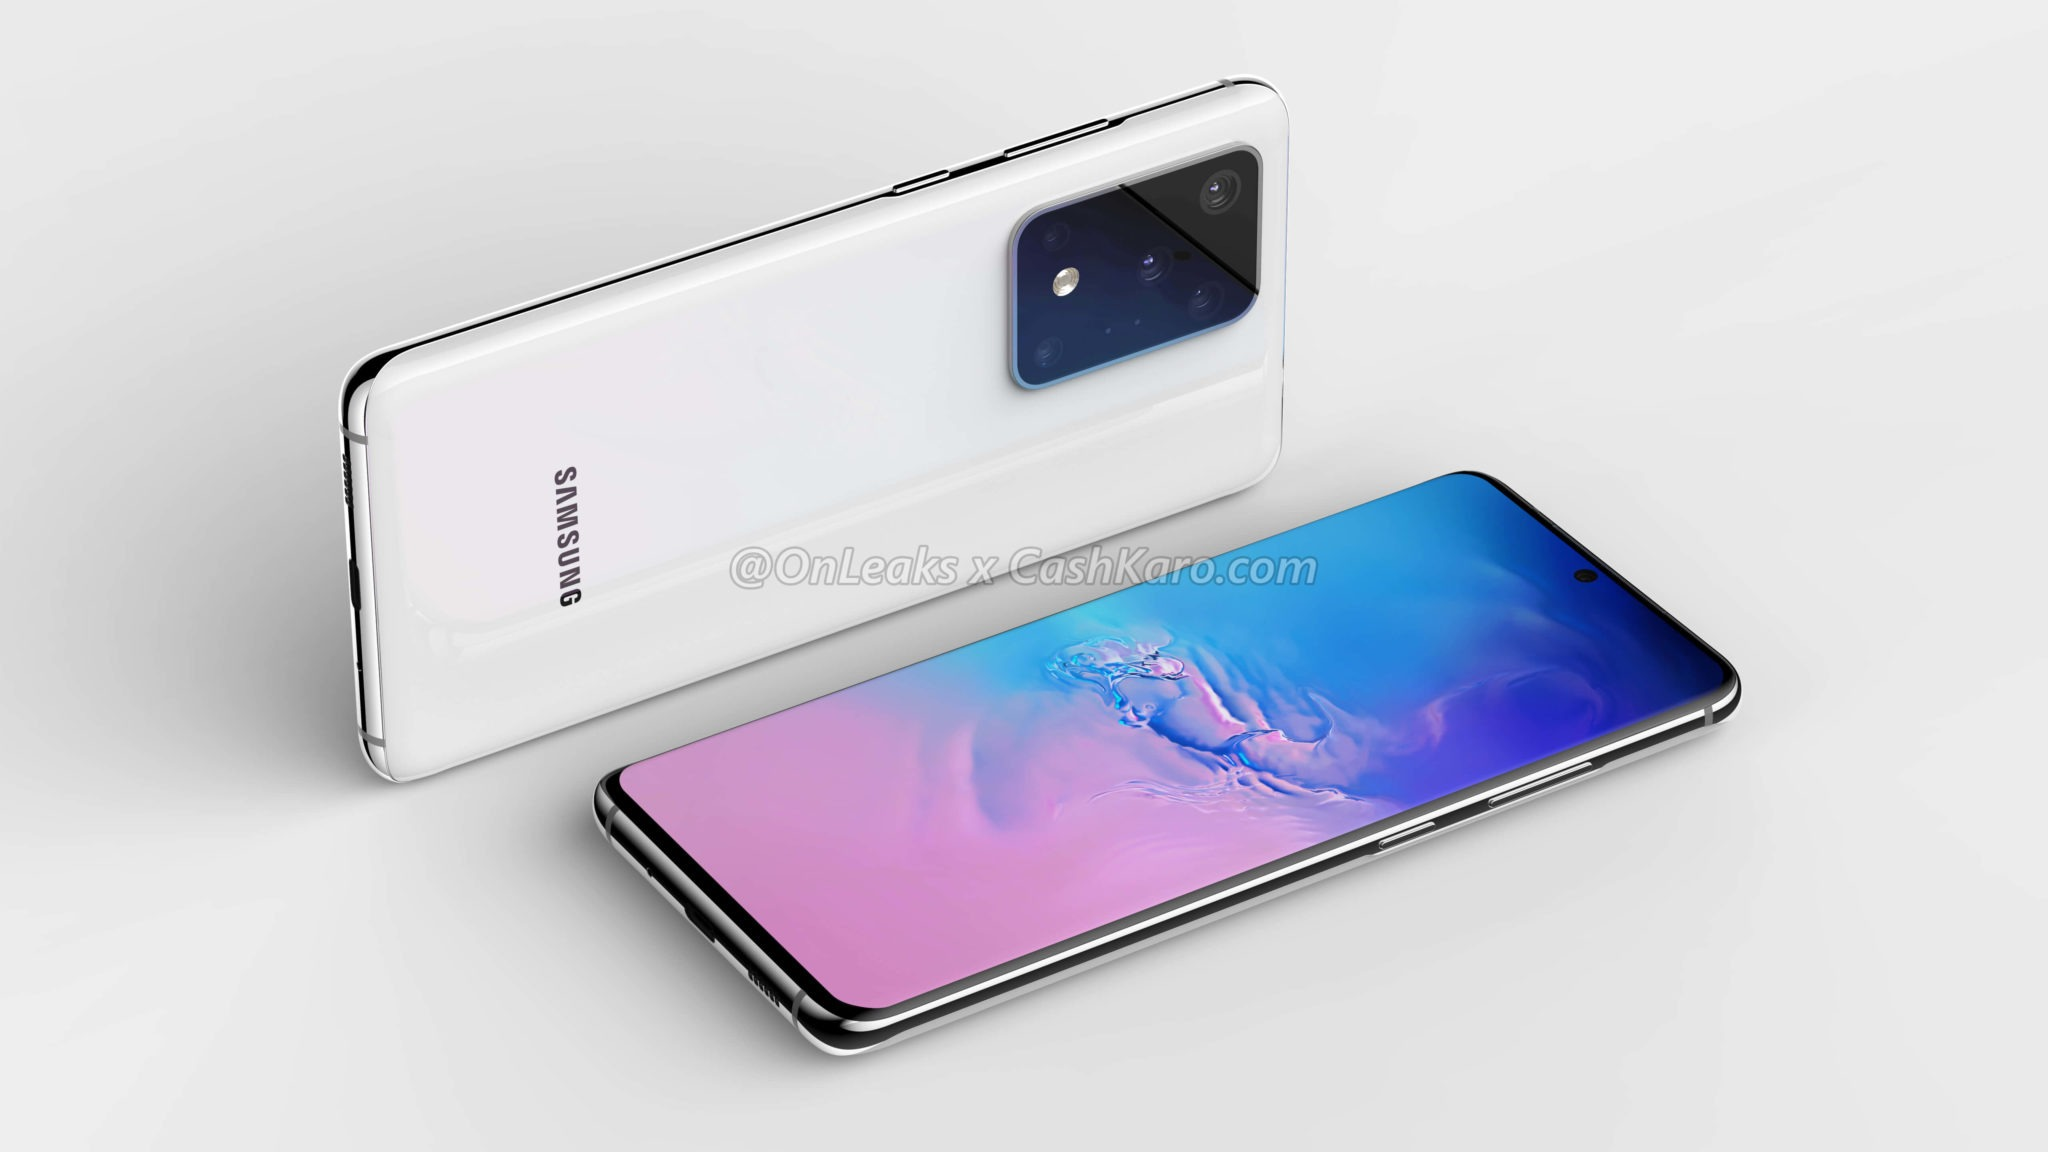 This is the Samsung Galaxy S11+ with a massive camera module